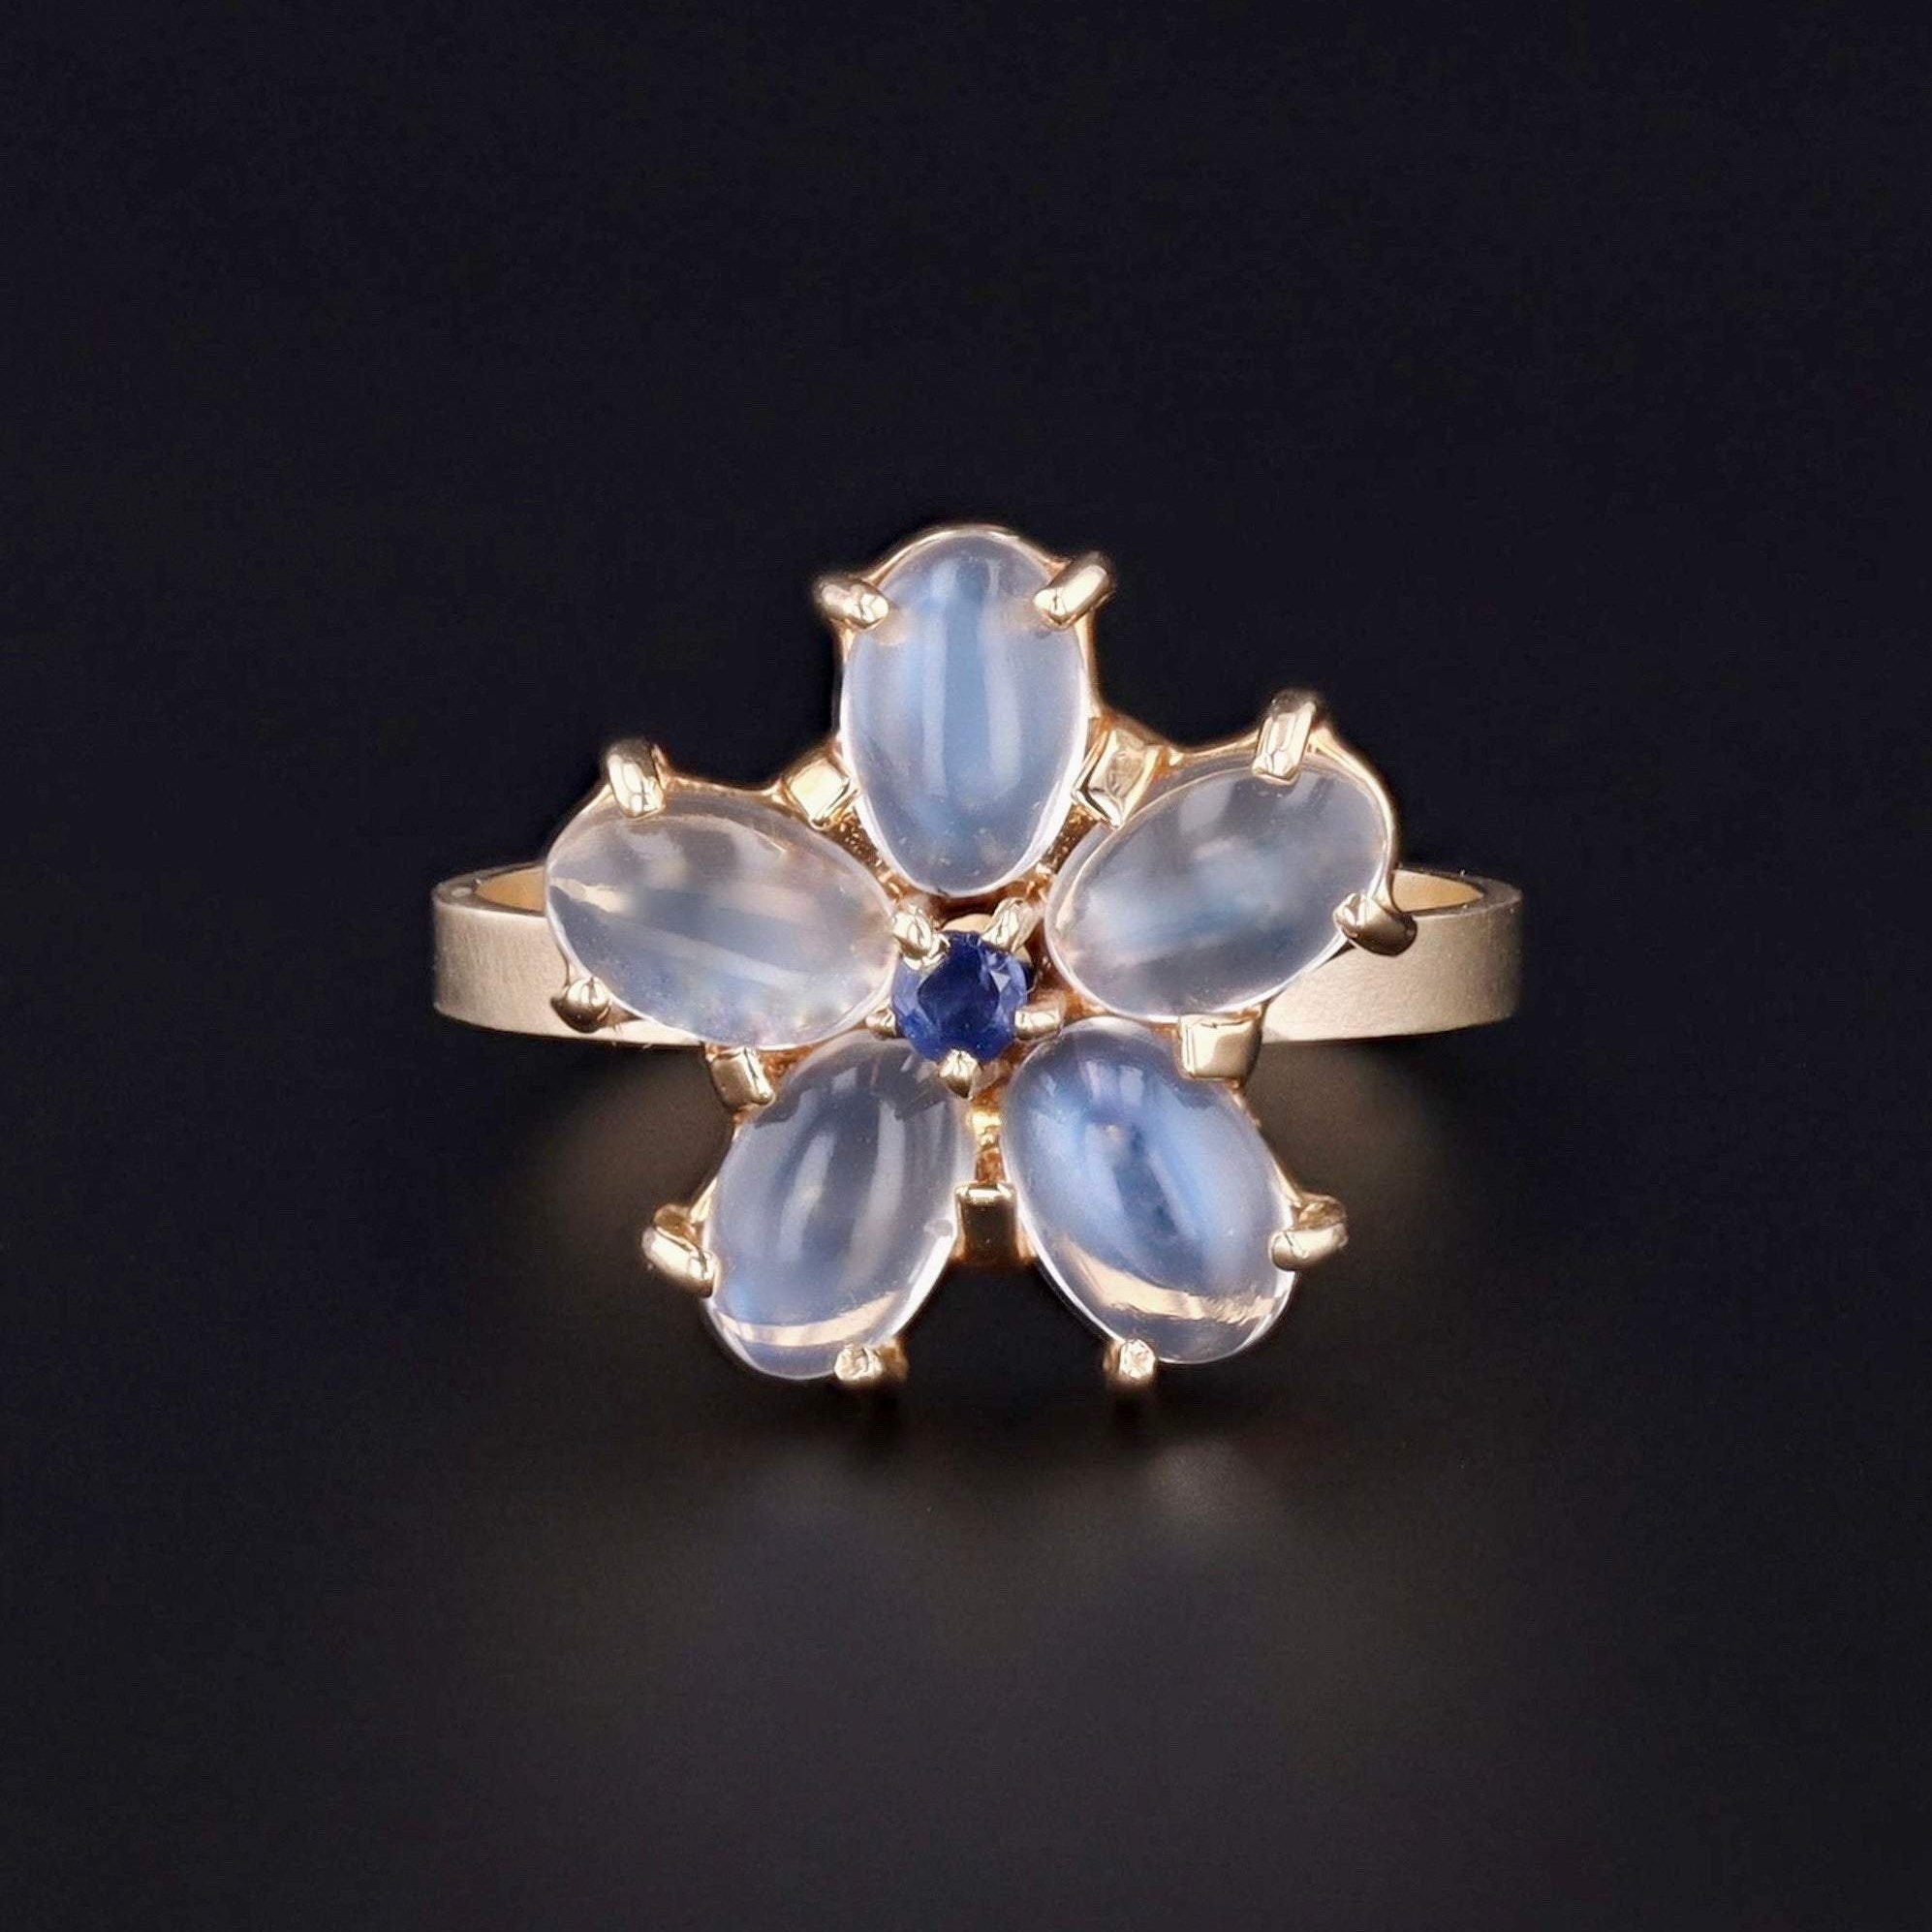 Moonstone & Sapphire Flower Ring | Vintage Pin Conversion Ring | 14k Gold Moonstone Ring | Moonstone Ring